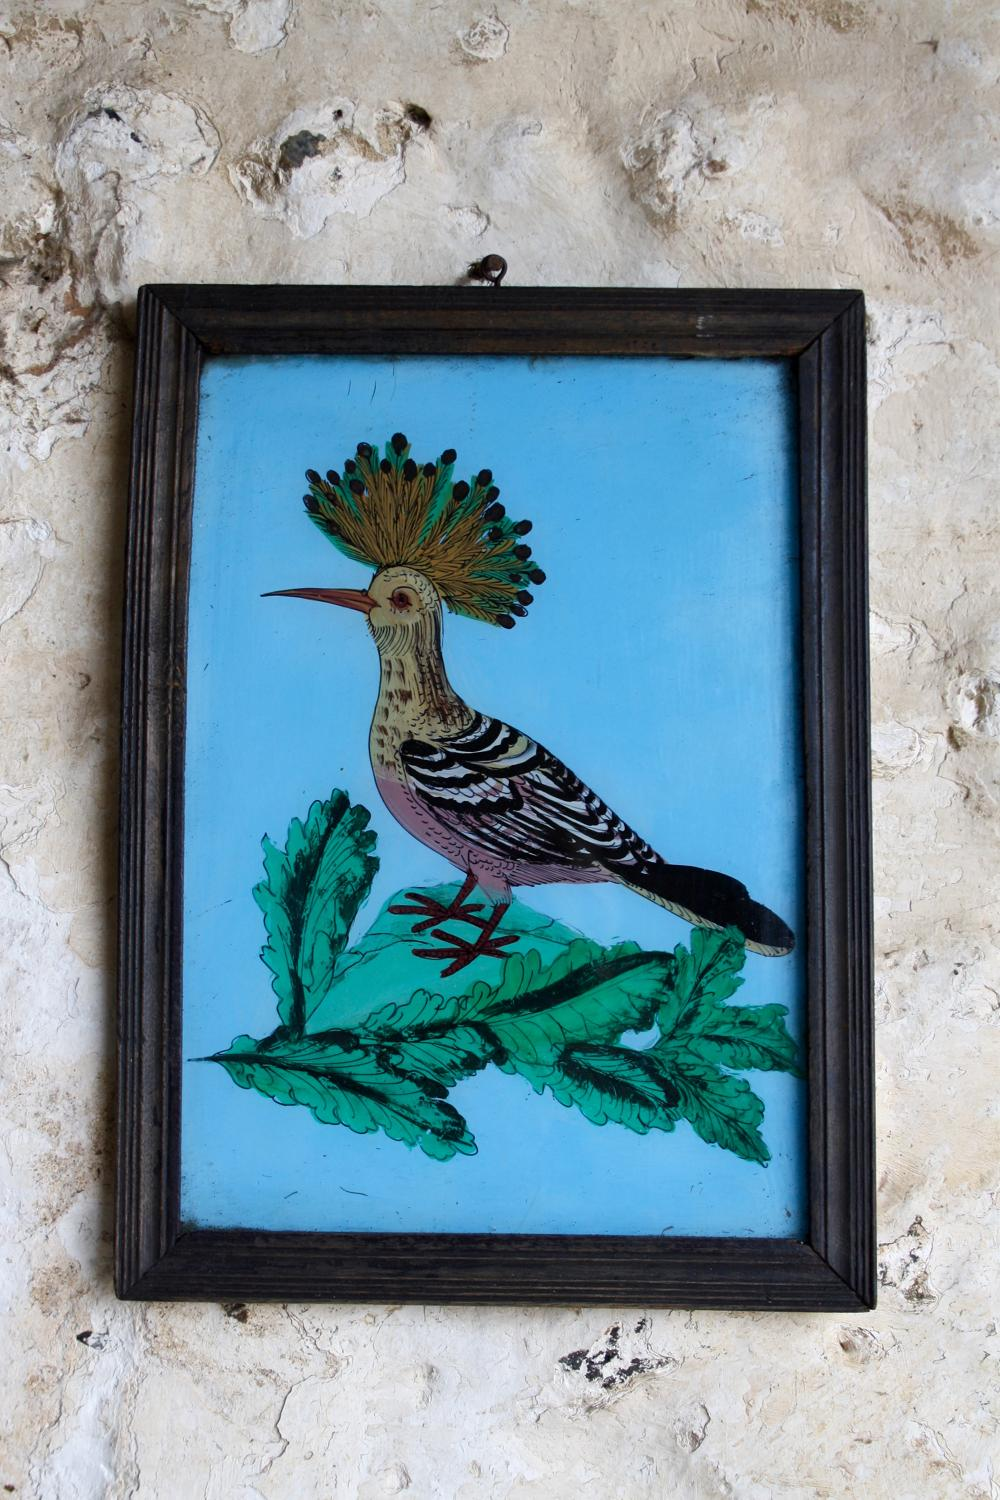 Indian glass painting - bird